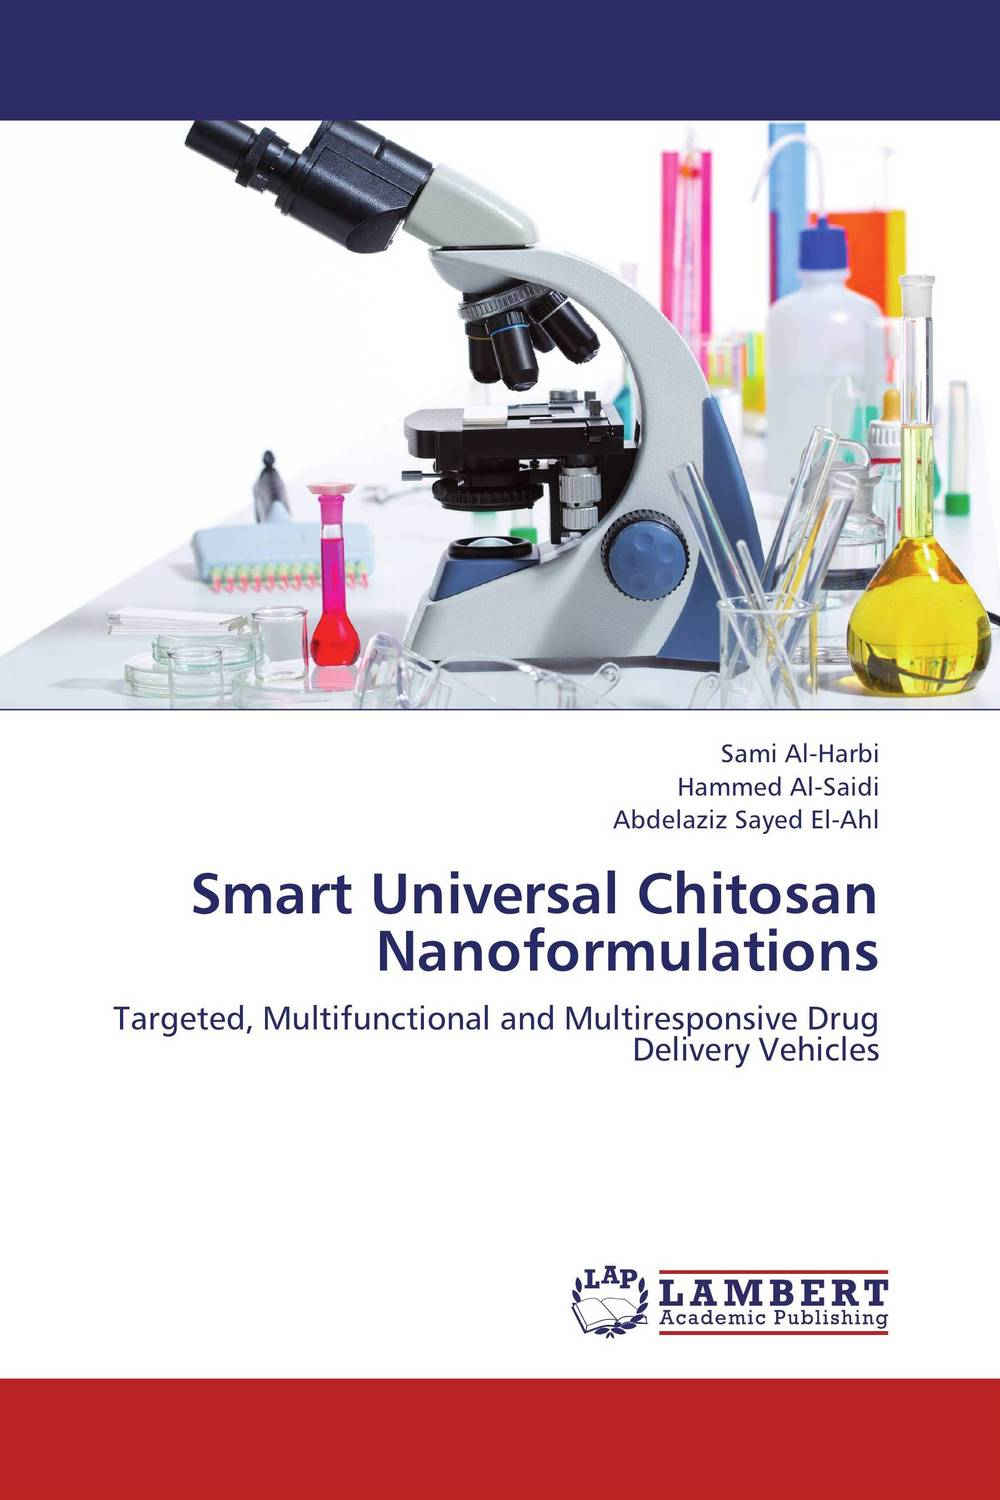 Фото Smart Universal Chitosan Nanoformulations cervical cancer in amhara region in ethiopia